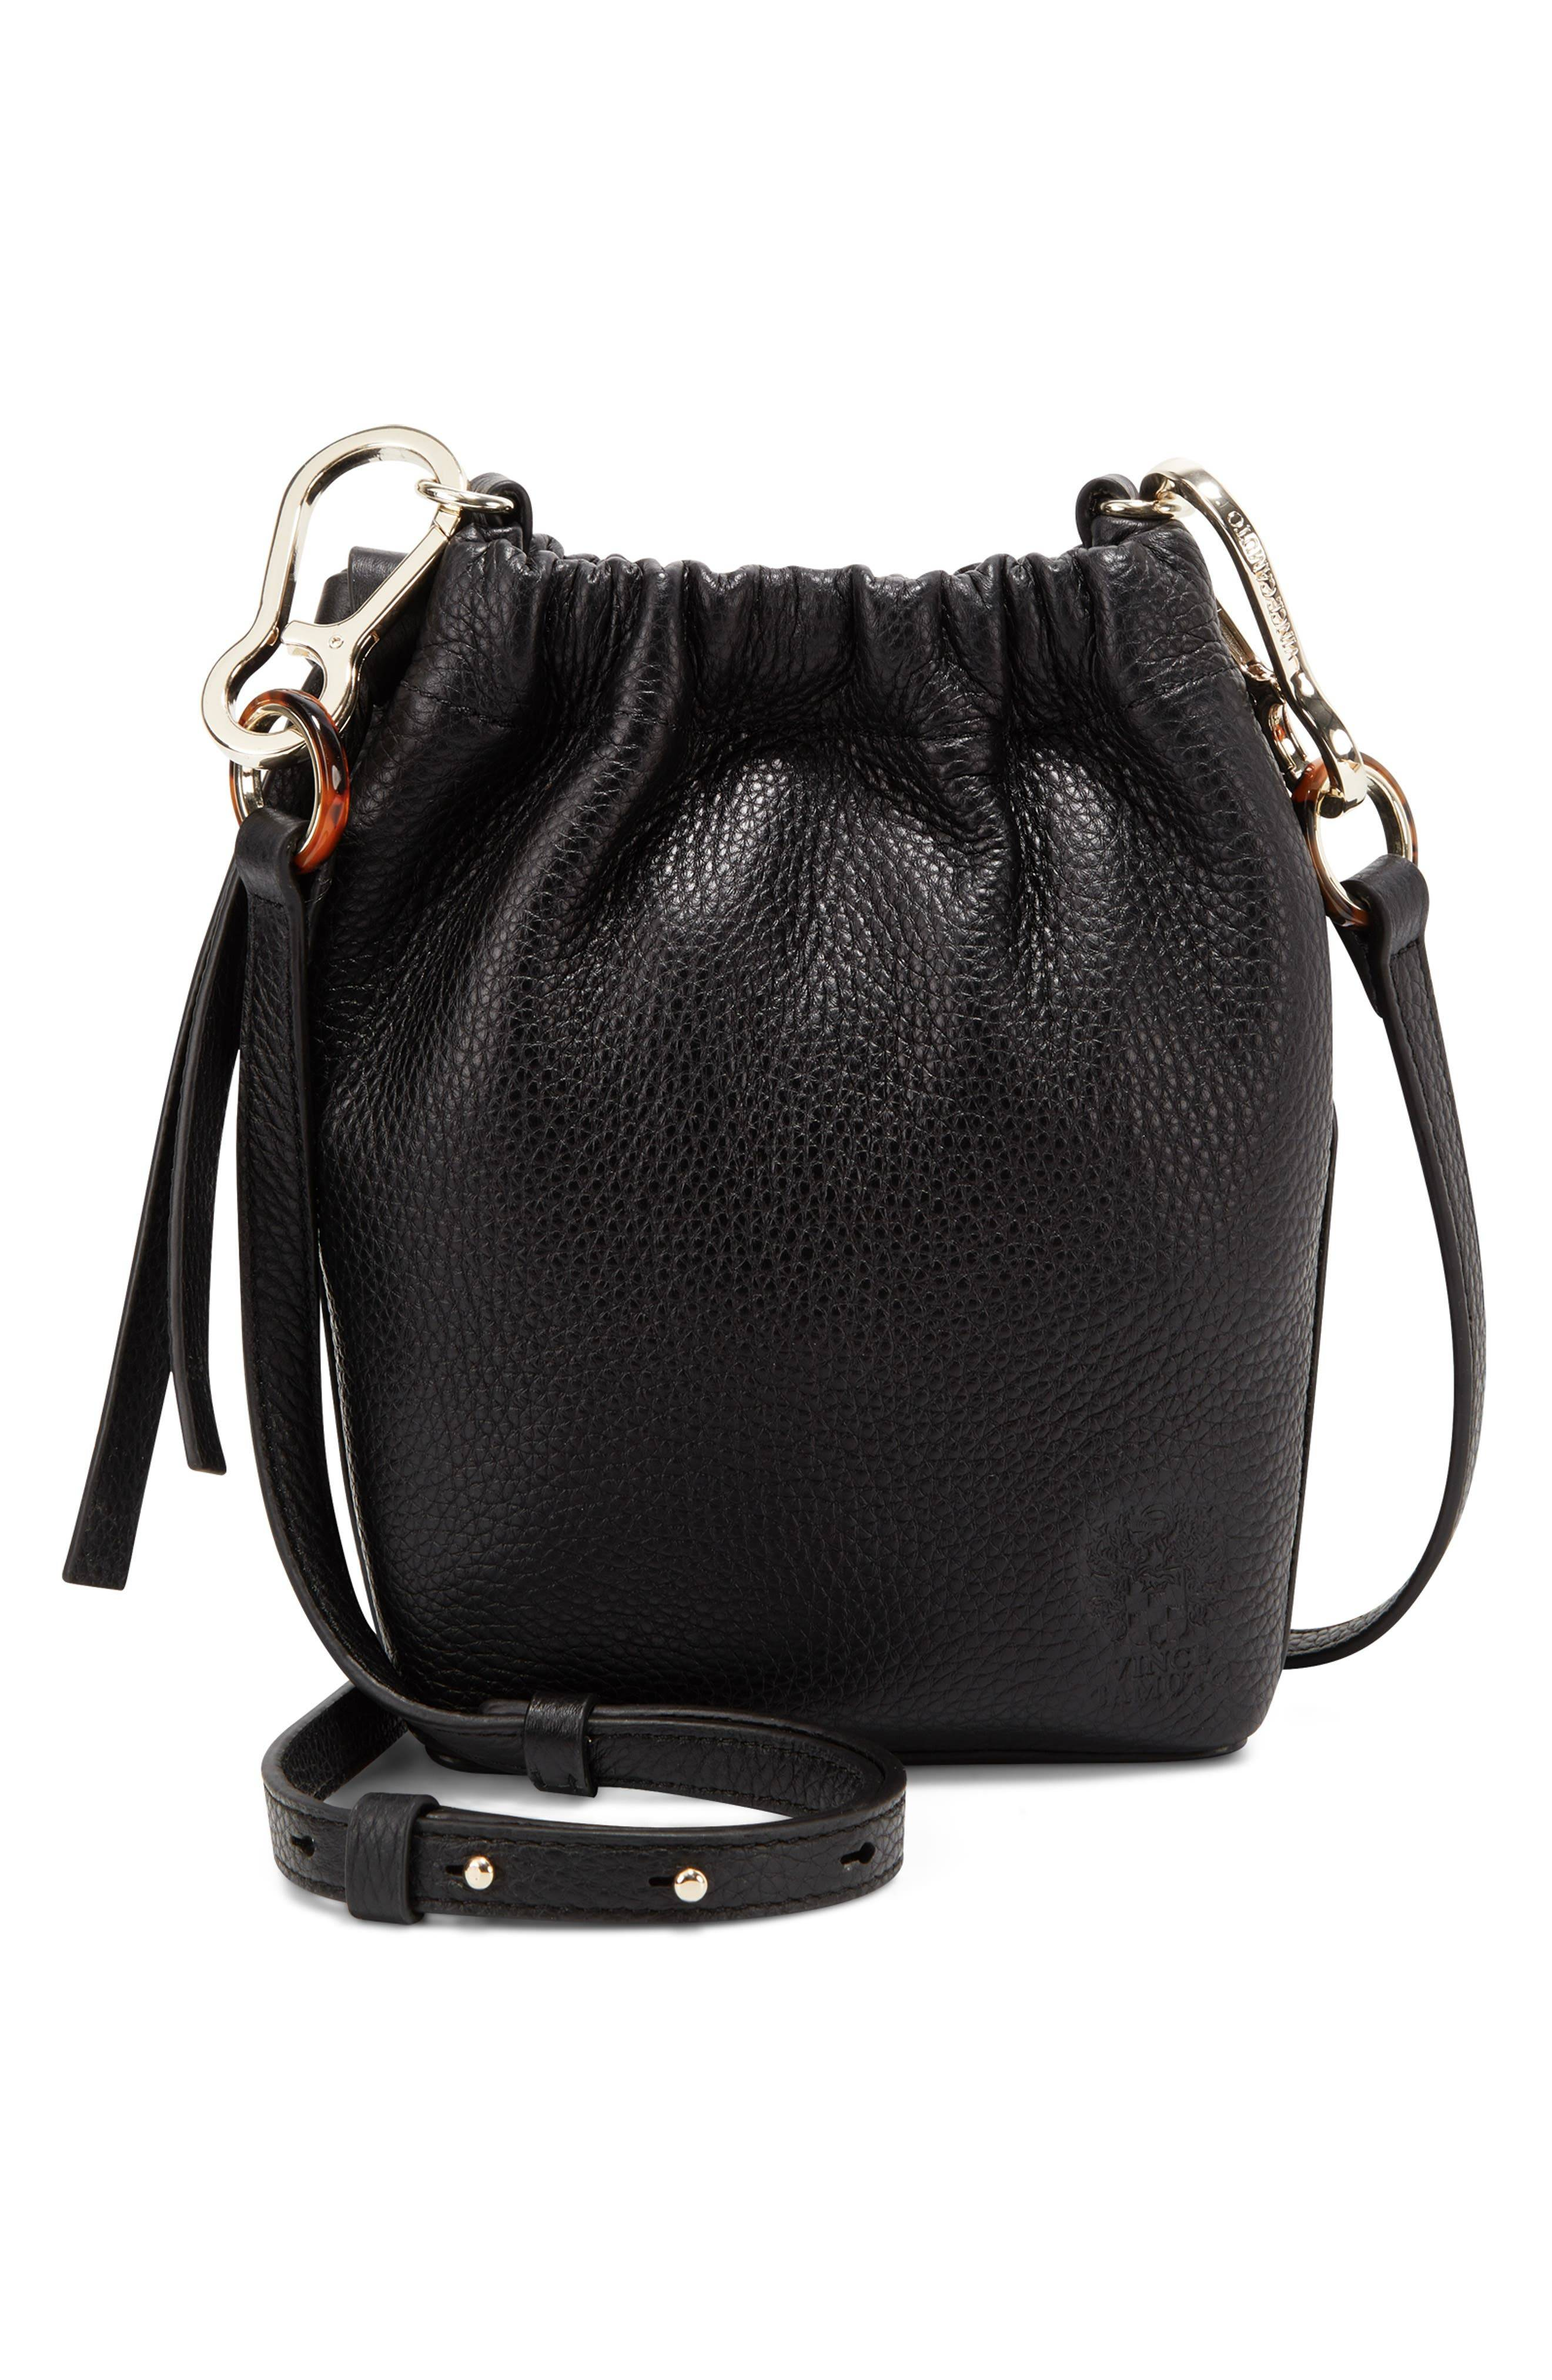 Vince Camuto Drawstring Leather Phone Pouch - Black